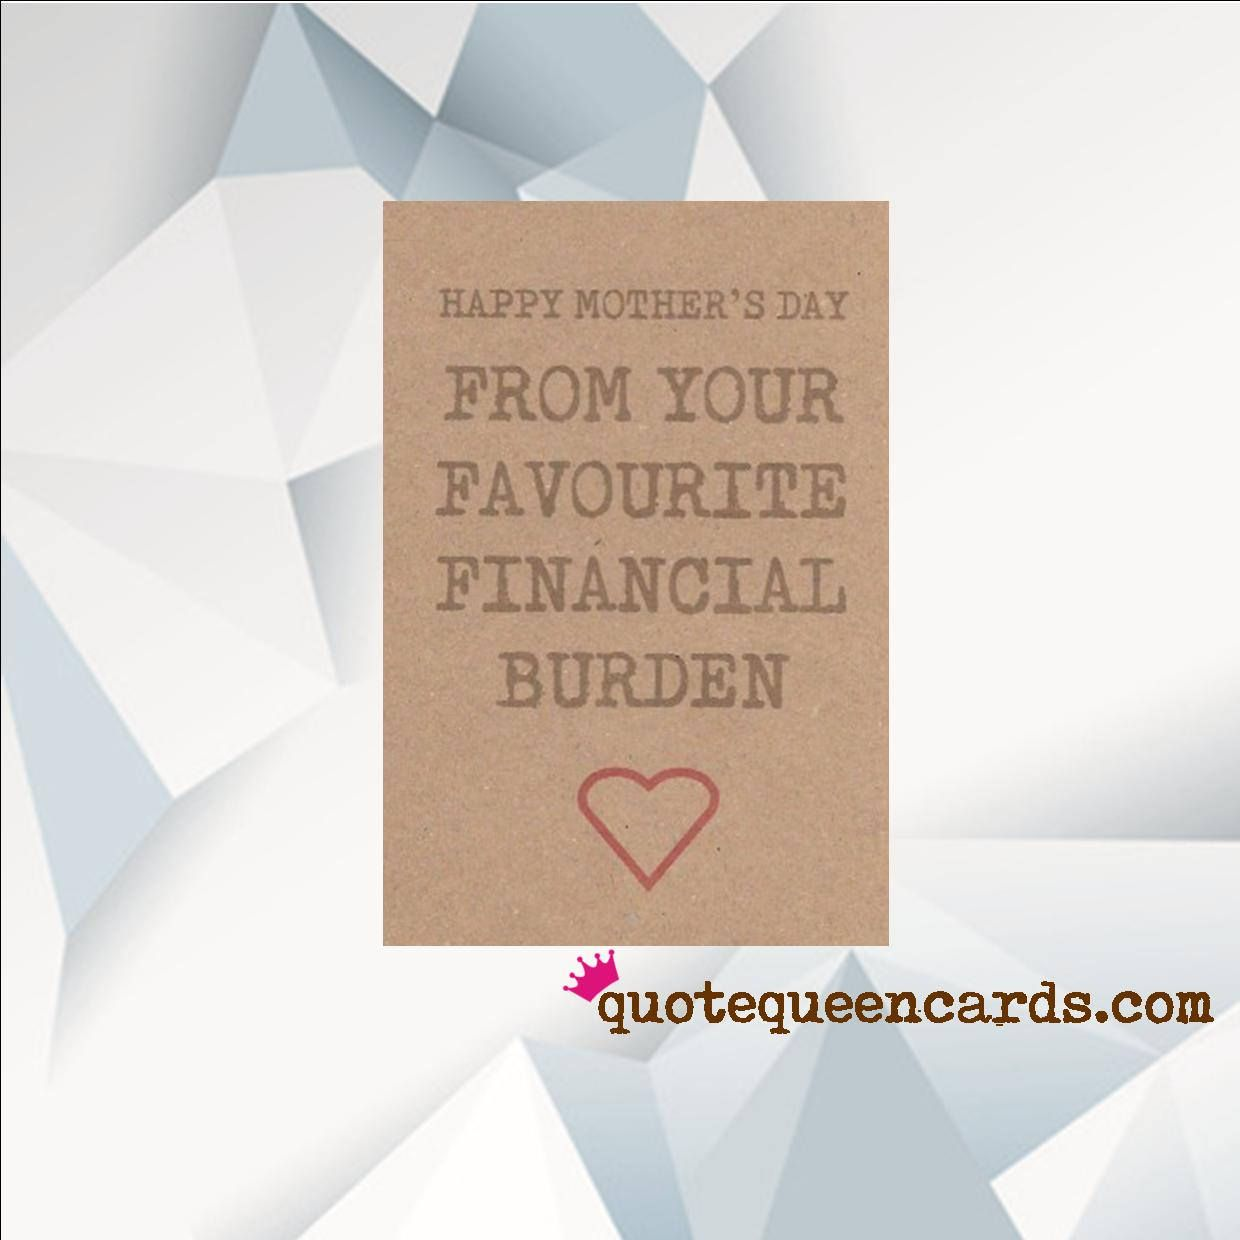 Happy motherus day from your favourite finacial burden funny